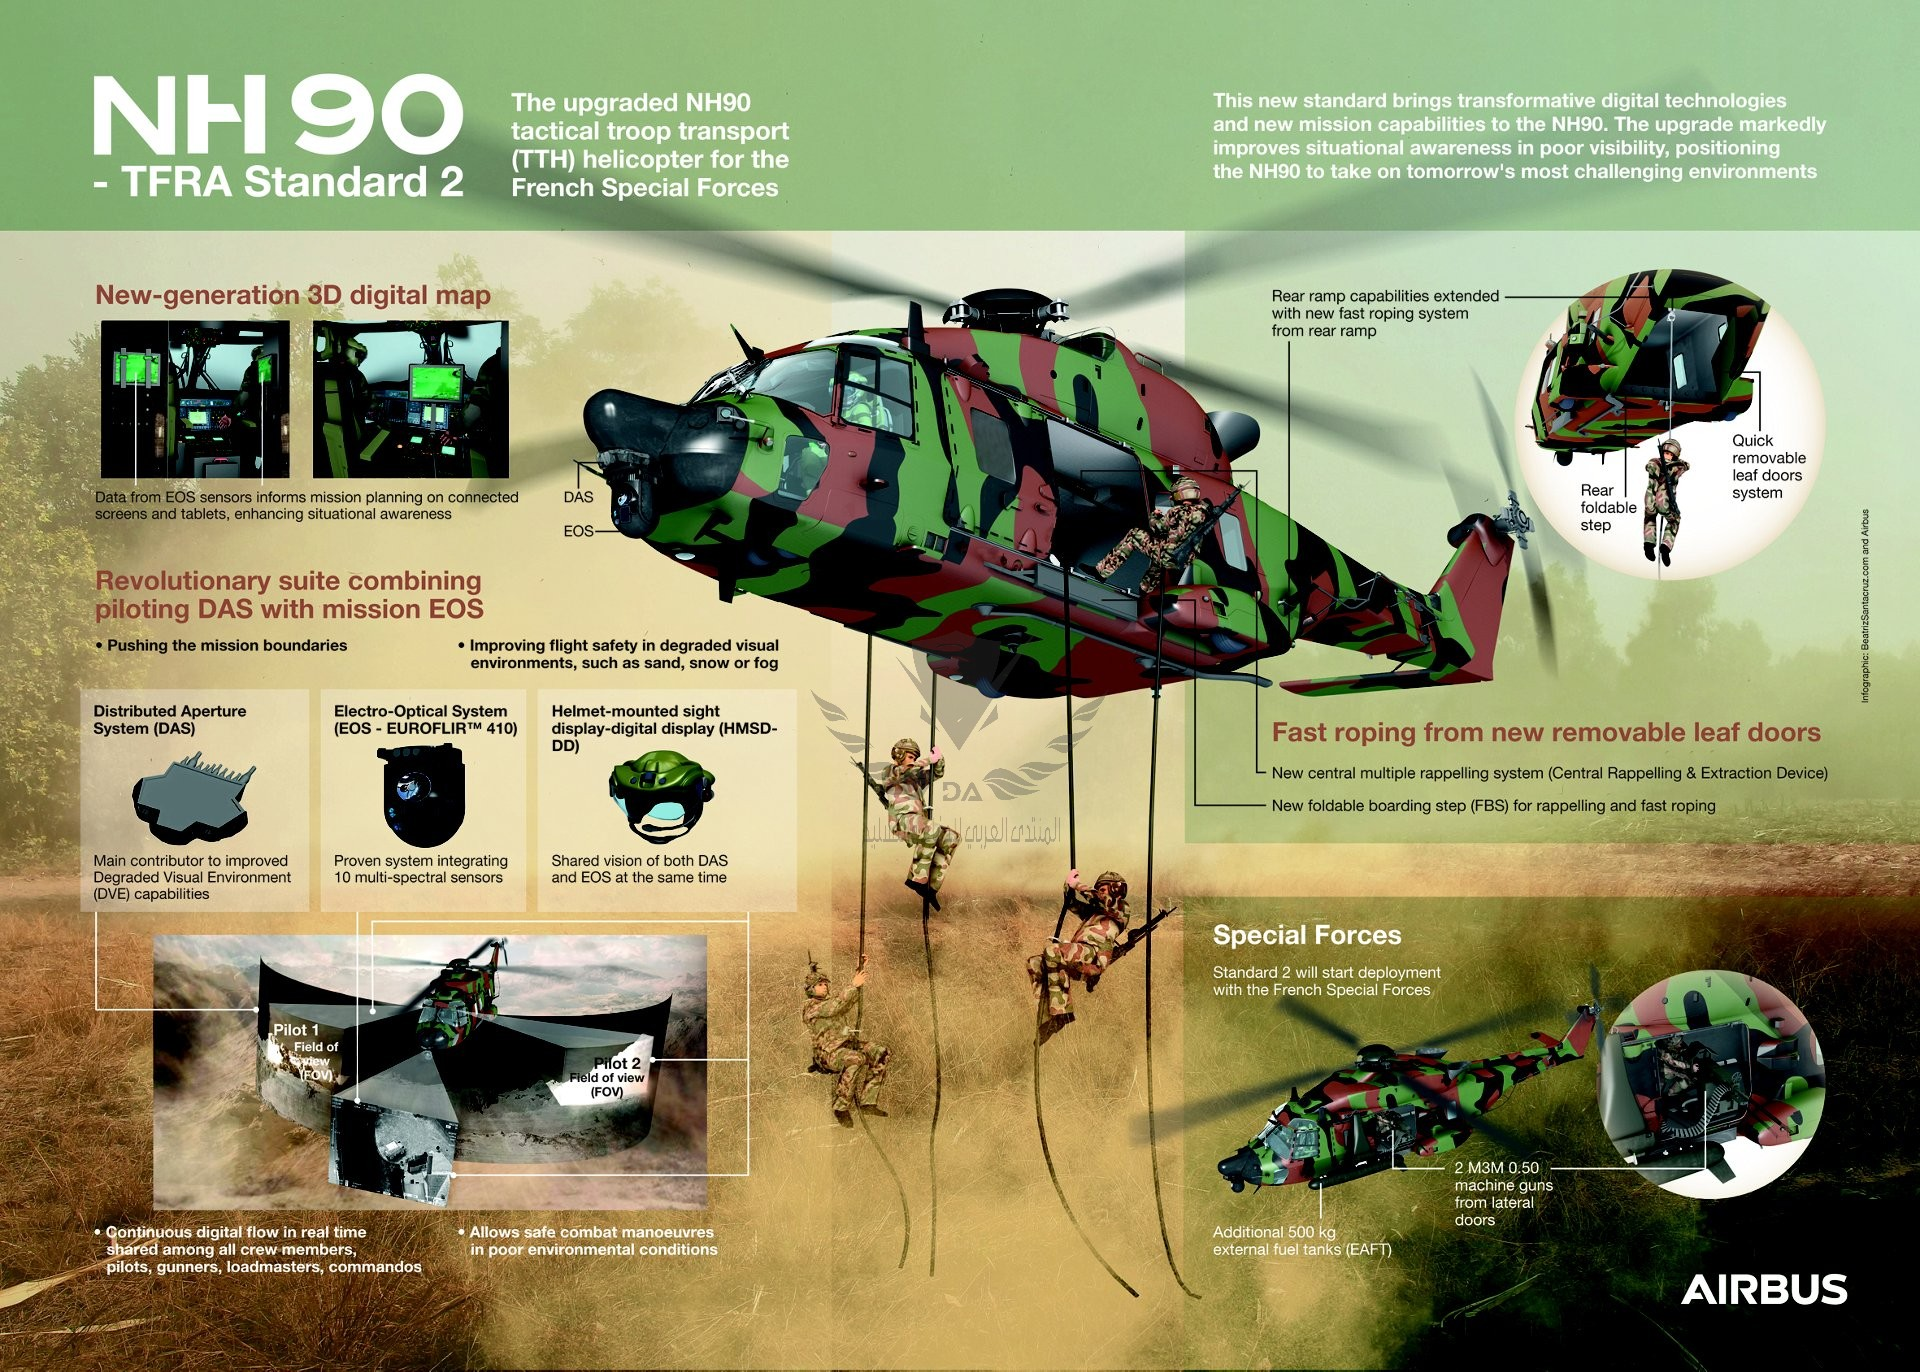 Infographic-NH90-TFRA-Standard2.jpg